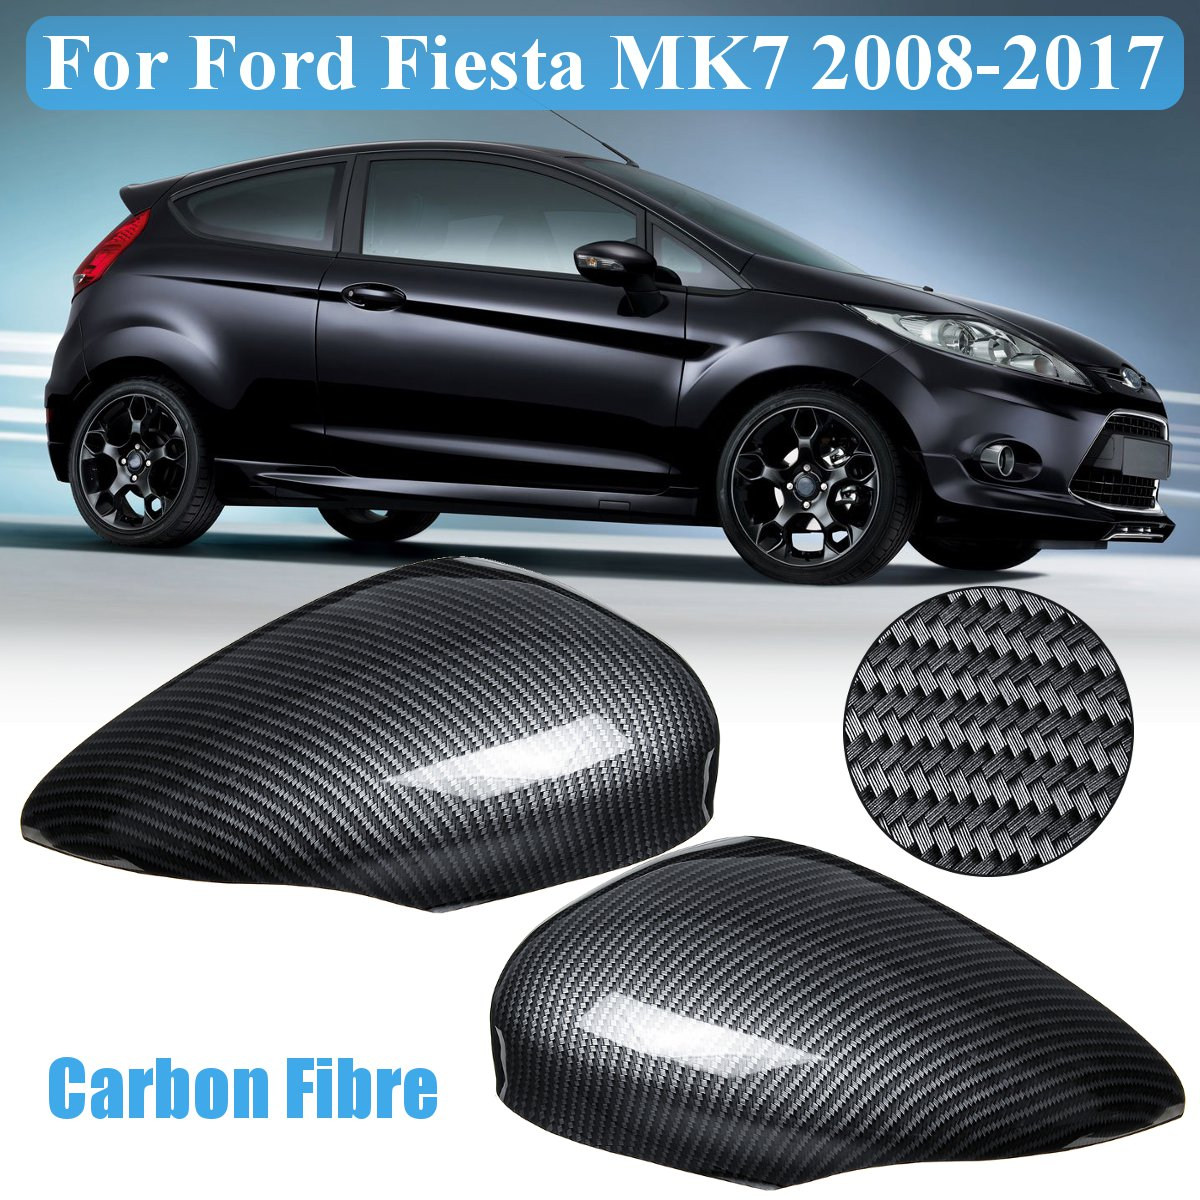 New Right Wing Door Rearview Mirror Cover Cap For Ford Fiesta MK7 2008-2017